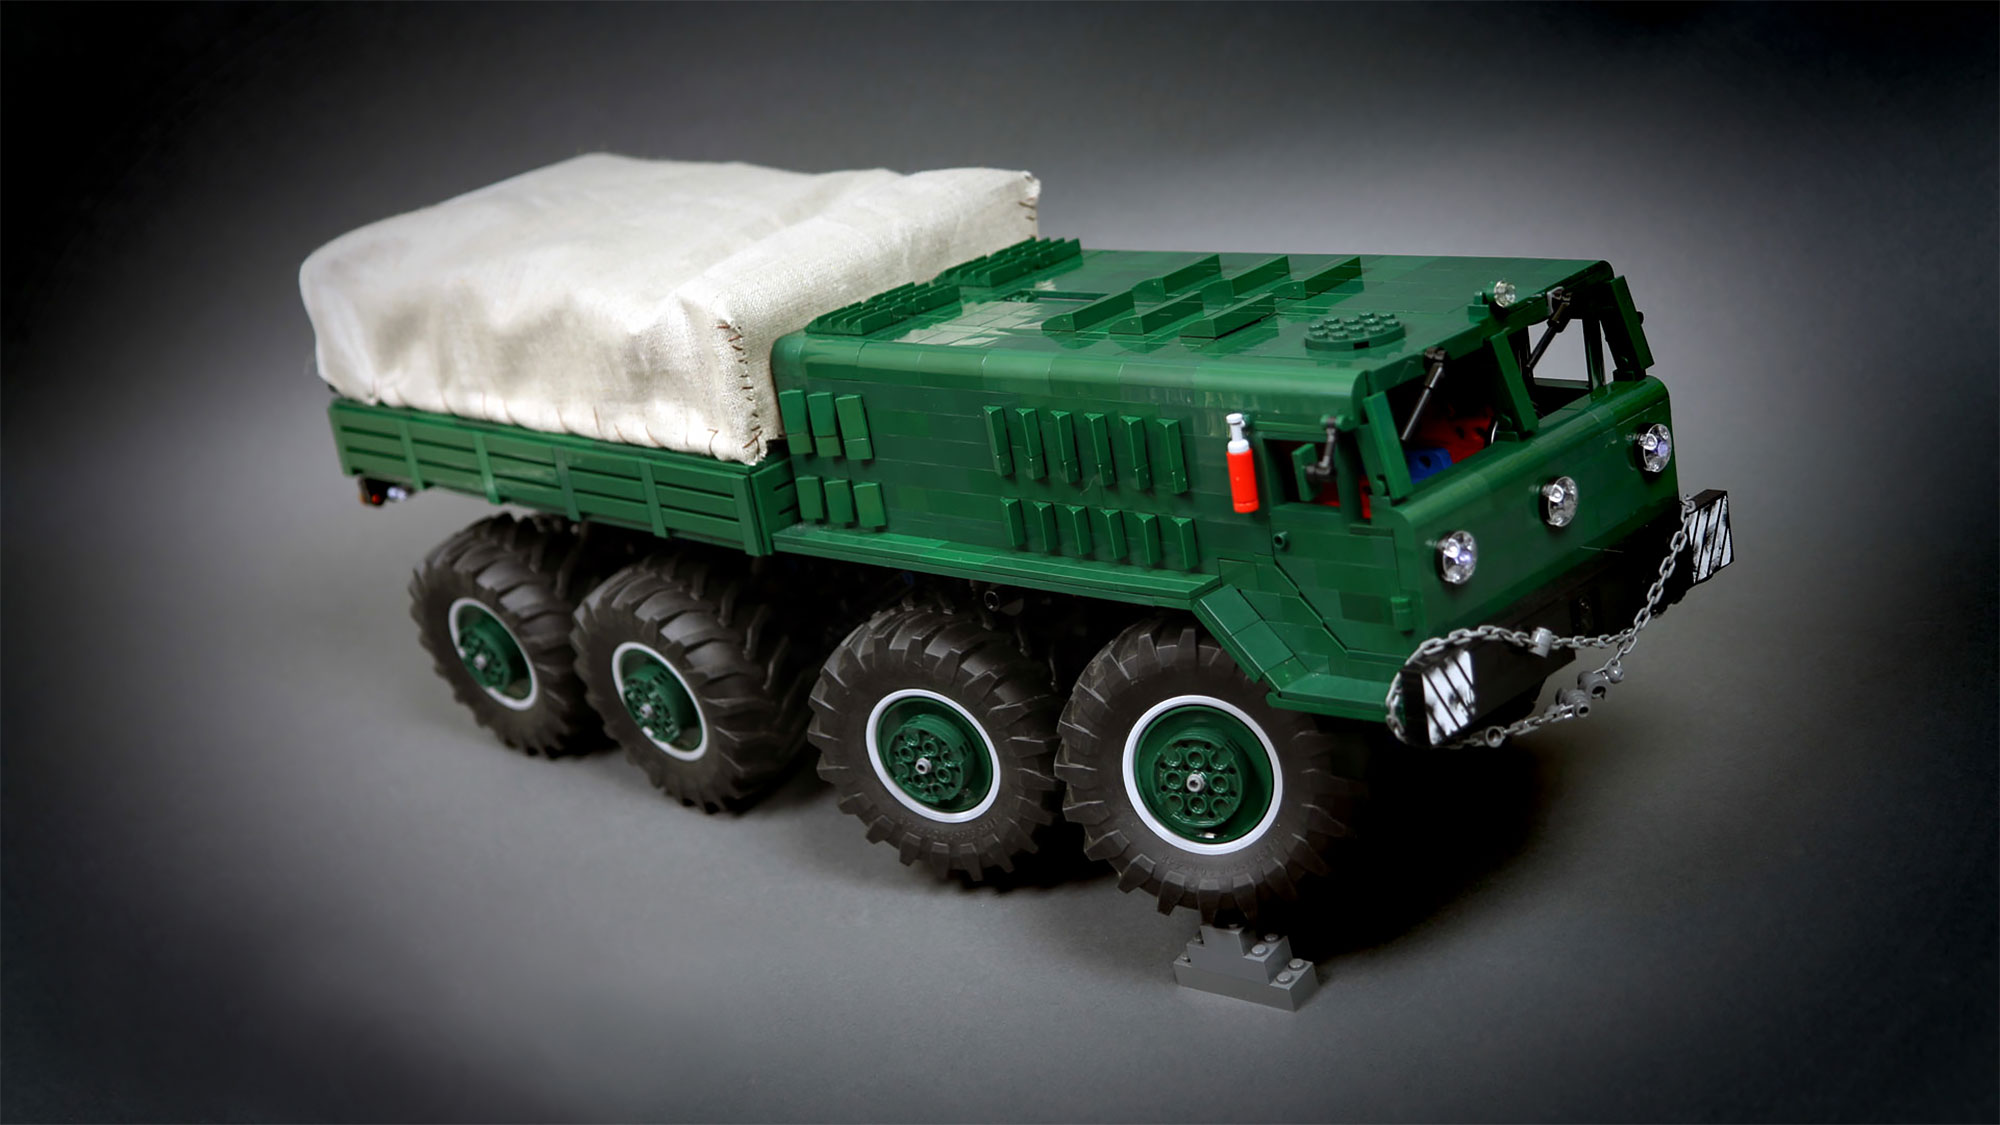 Believe It Or Not This Rc Maz 535 8x8 Truck Is A Lego Technic Moc Shouts